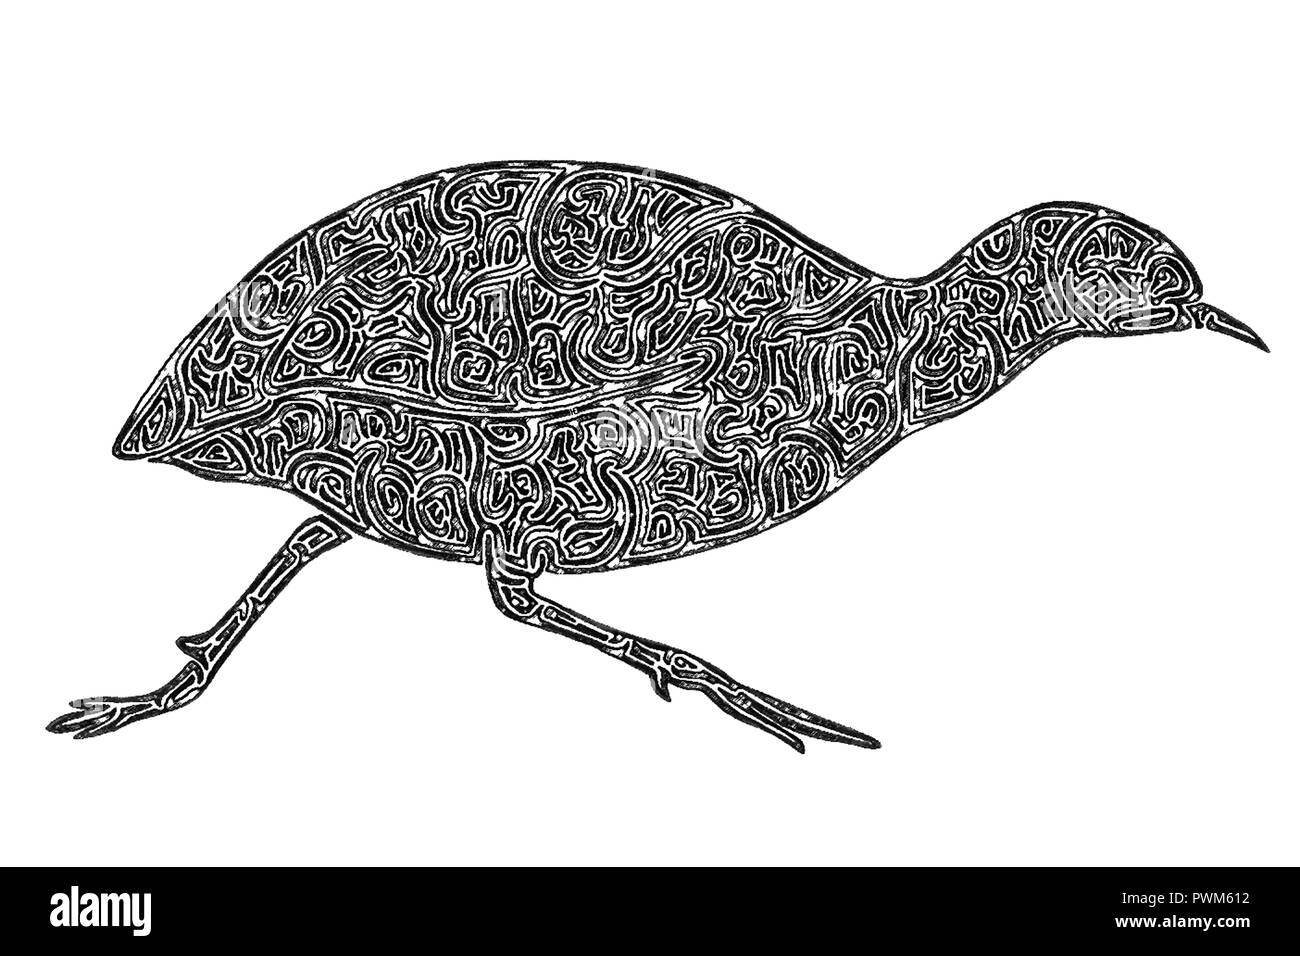 Illustration of a running Tinamou, black-and-white, maze lines - Stock Image